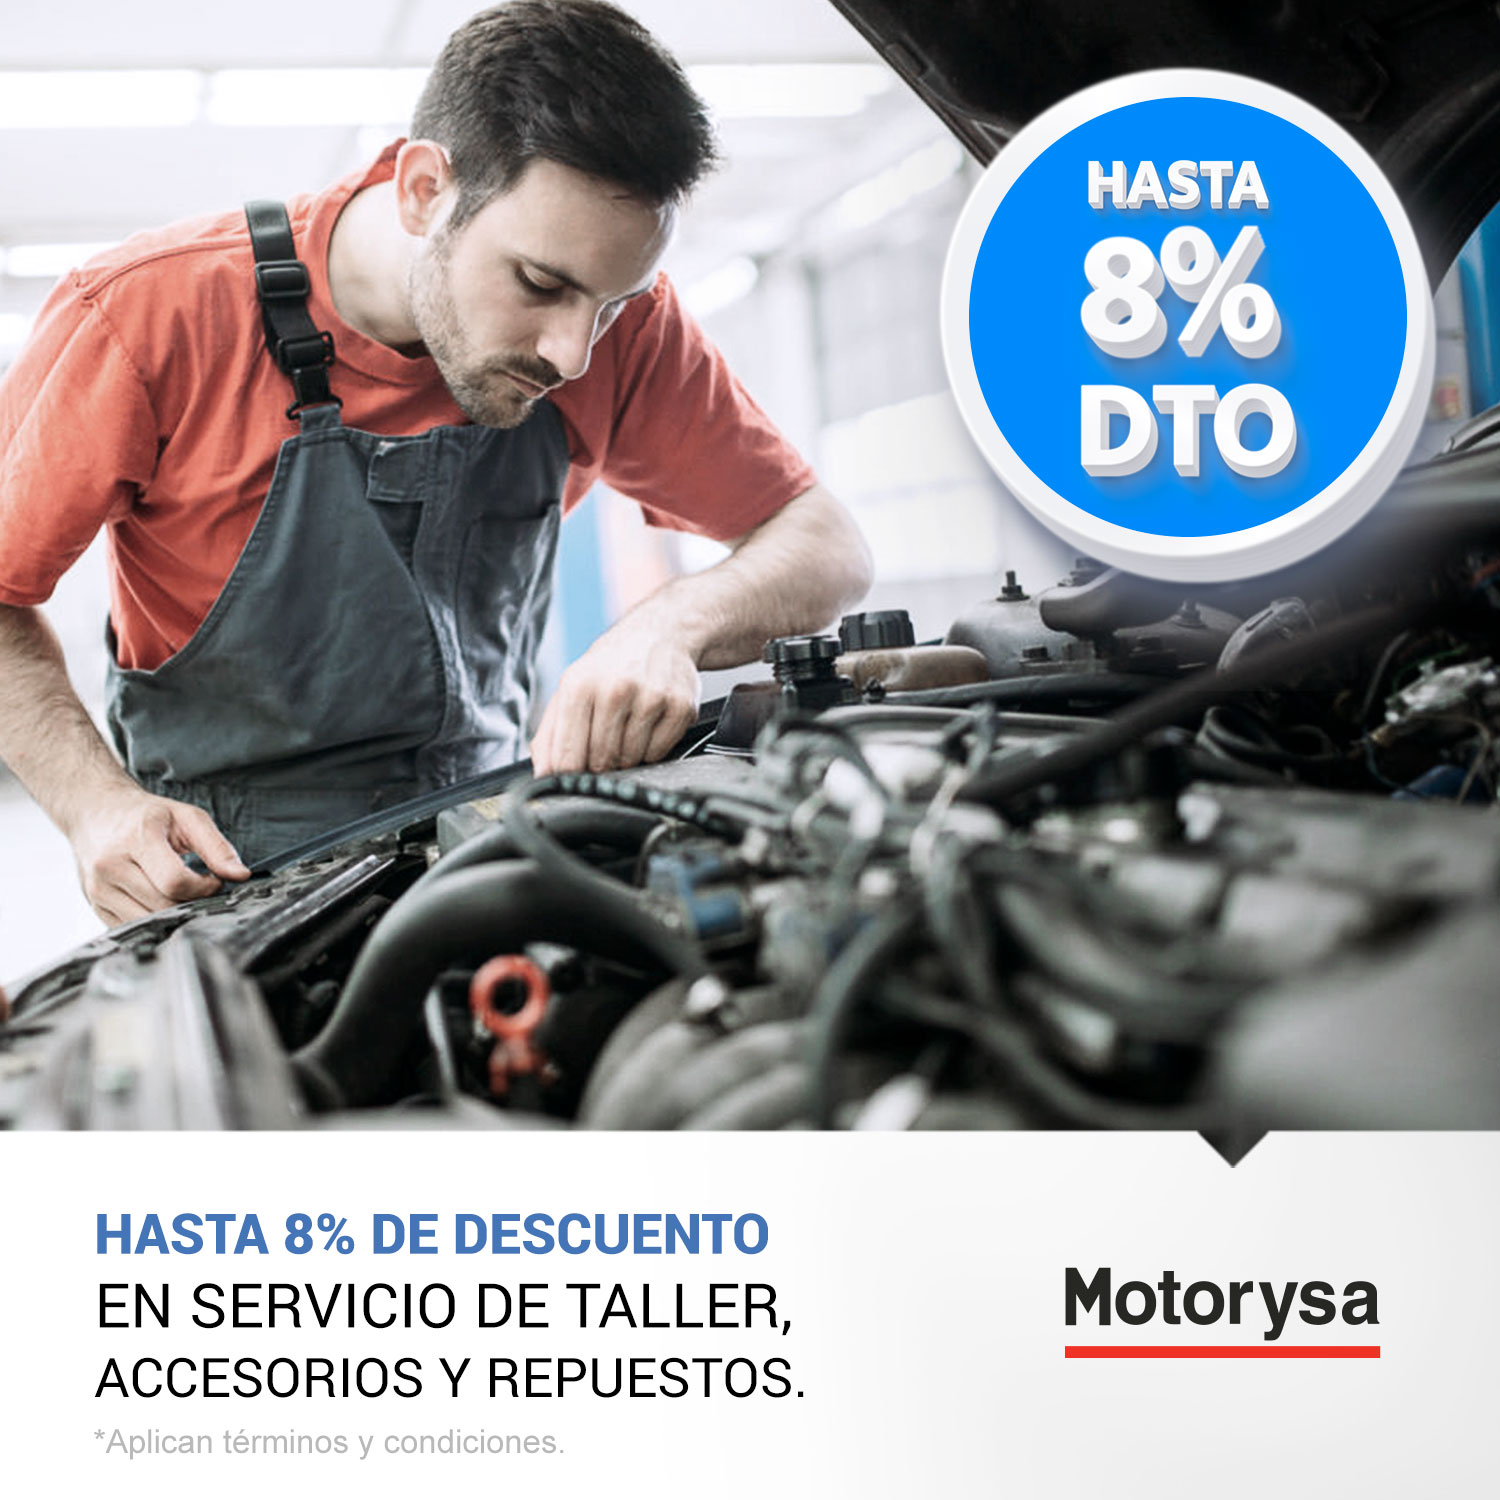 Beneficios exclusivos en talleres Motorysa